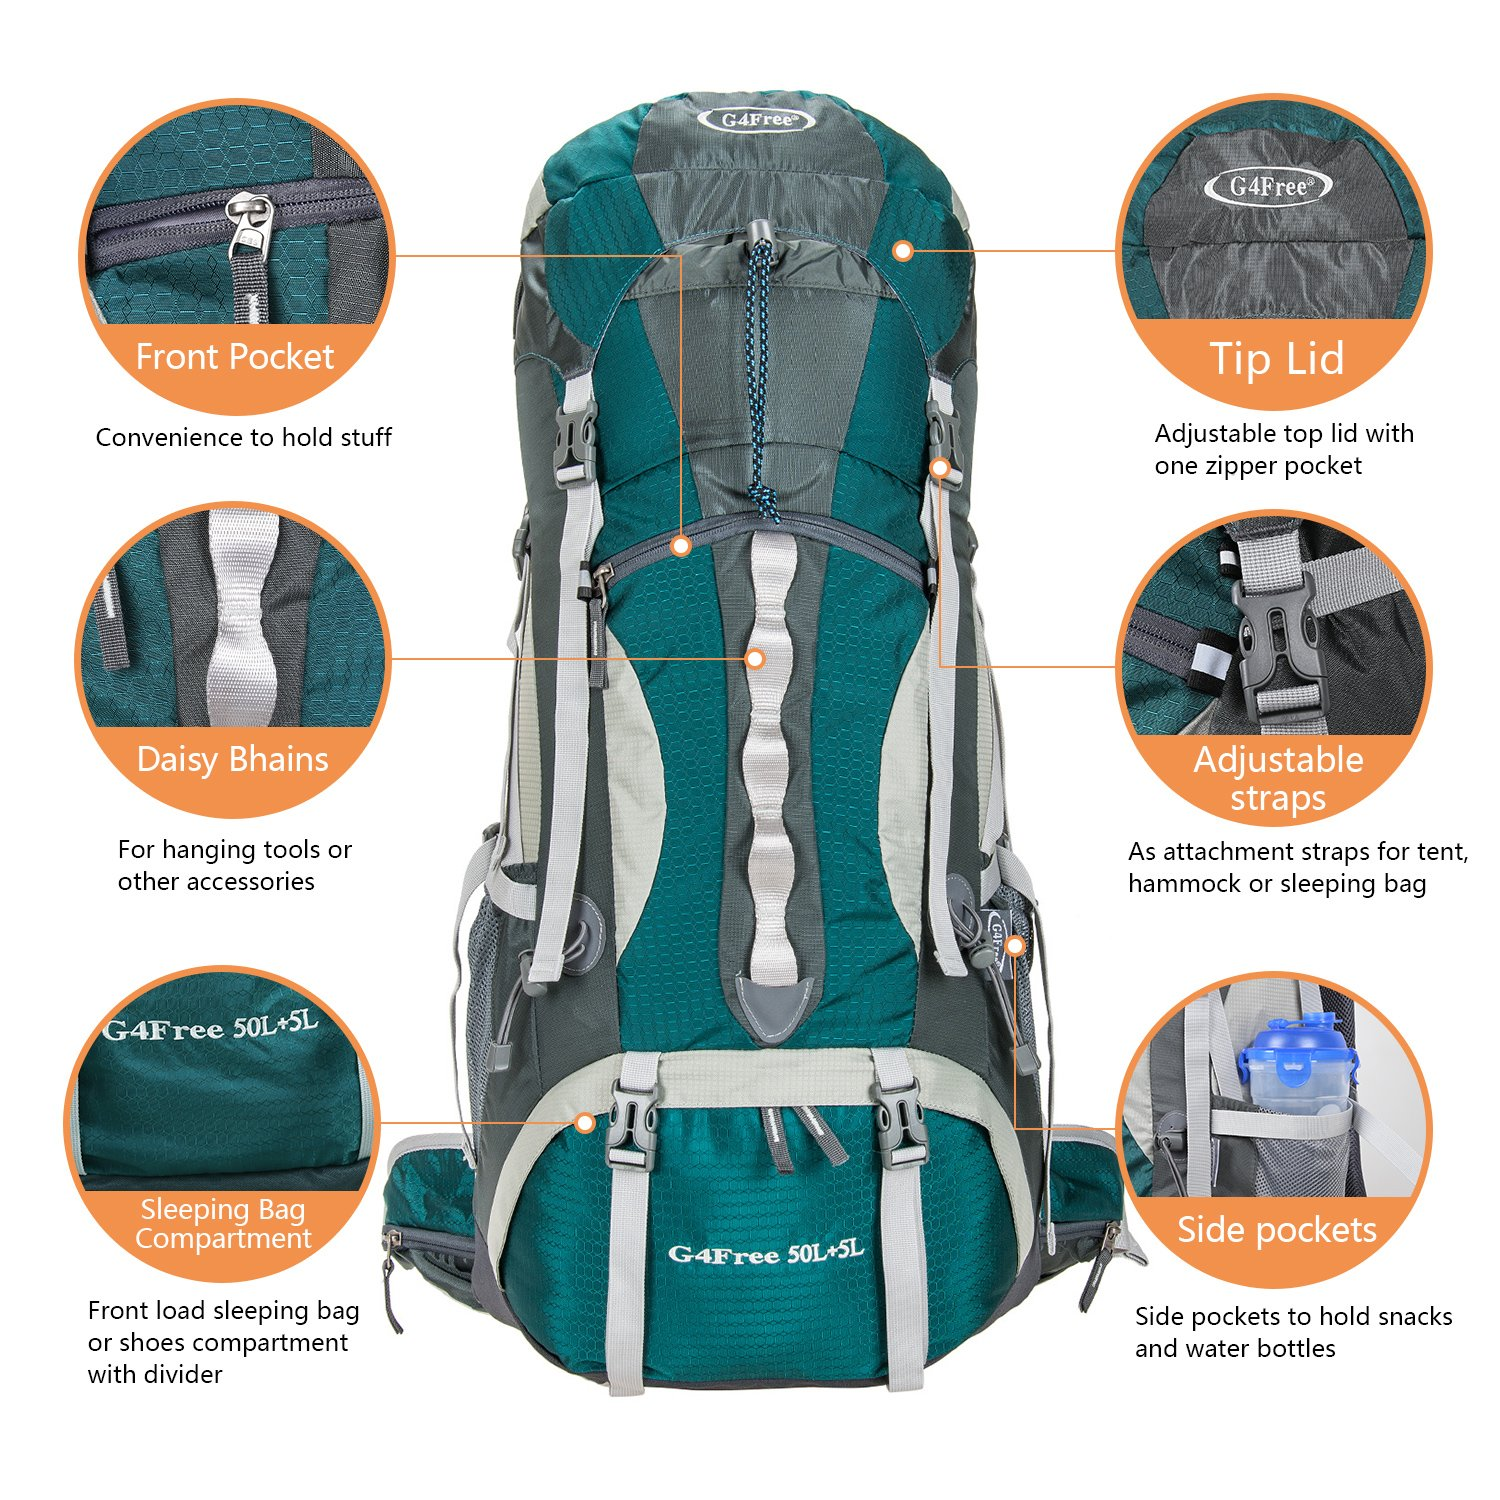 10beb21db8 Amazon.com   G4Free 50L+5L Outdoor Sport Water-resistant Hiking Backpacks  Internal Frame Backpacking Backpack Camping Bag with Rain Cover for Women  Men ...